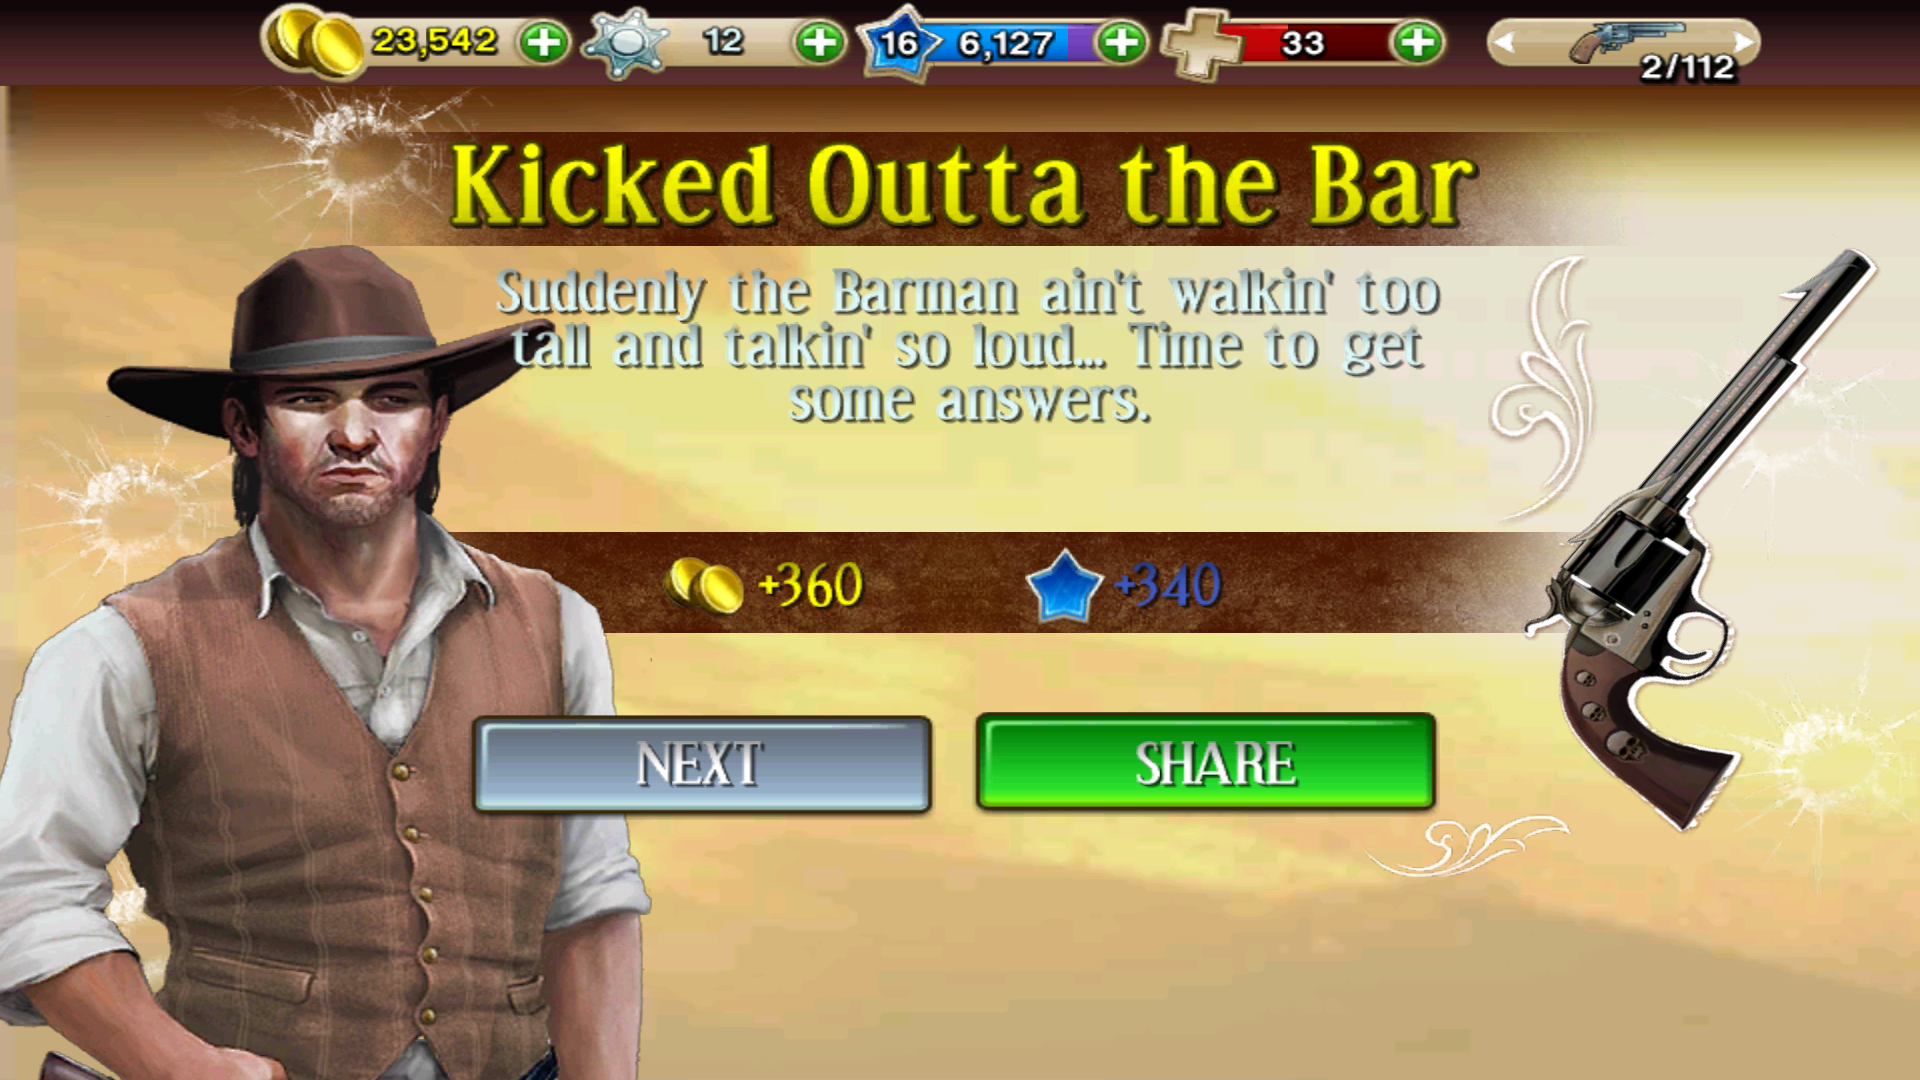 Kicked Outta The Bar